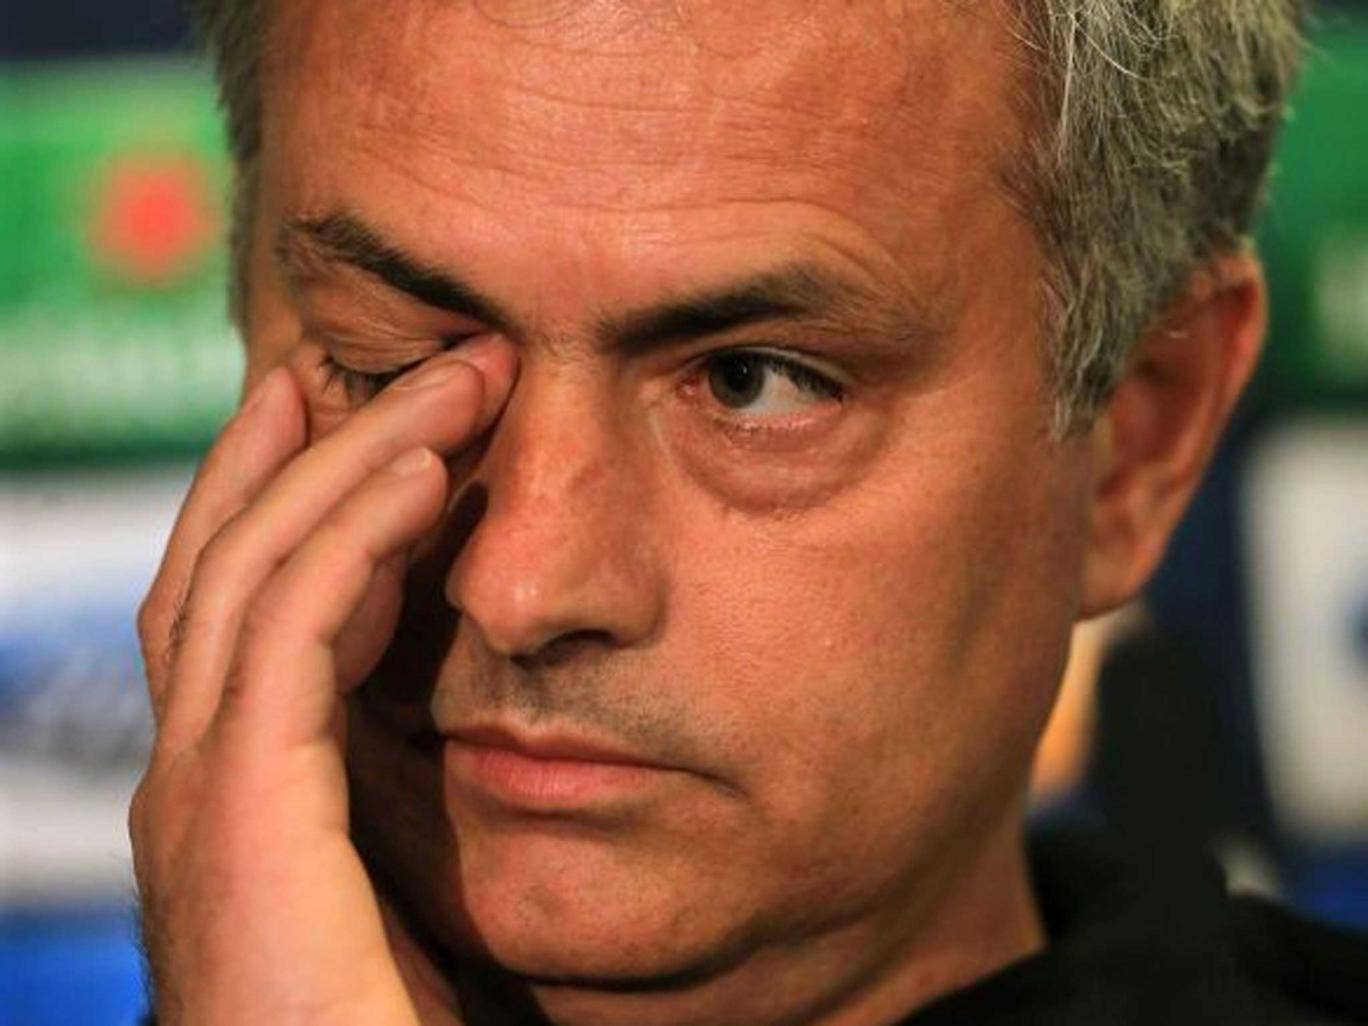 What a winker: There is no nobility in Jose Mourinho's tiresome posturing